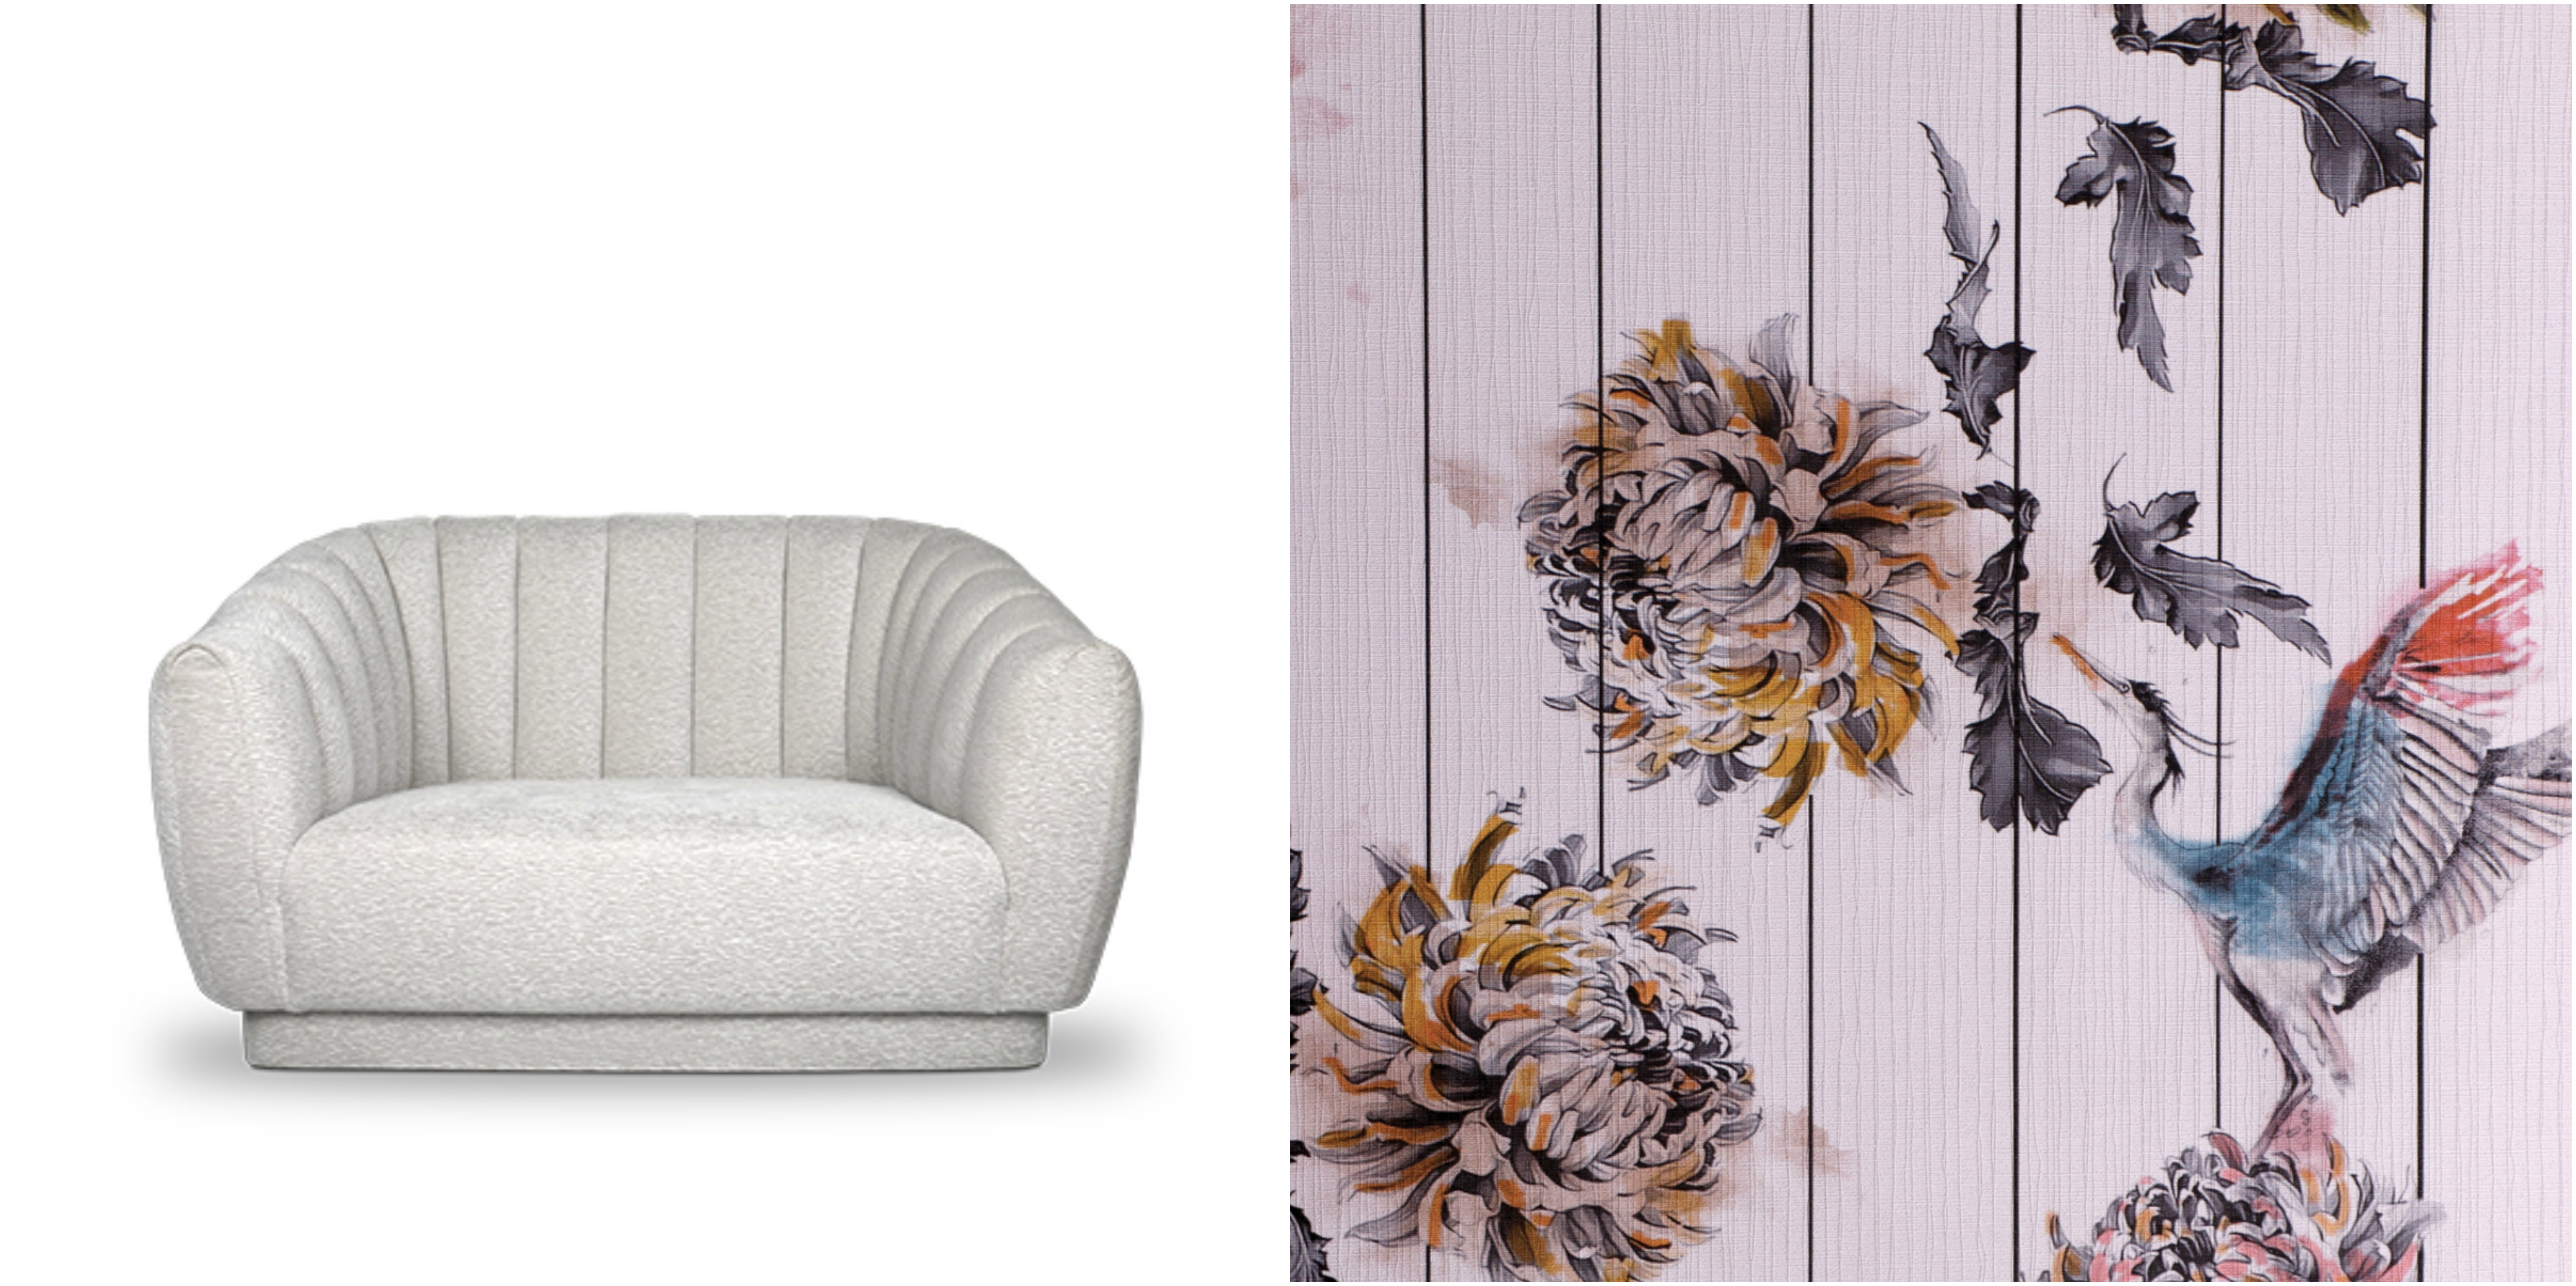 THE STRONGEST SUMMER TRENDS FOR 2018 BY COVET HOUSE